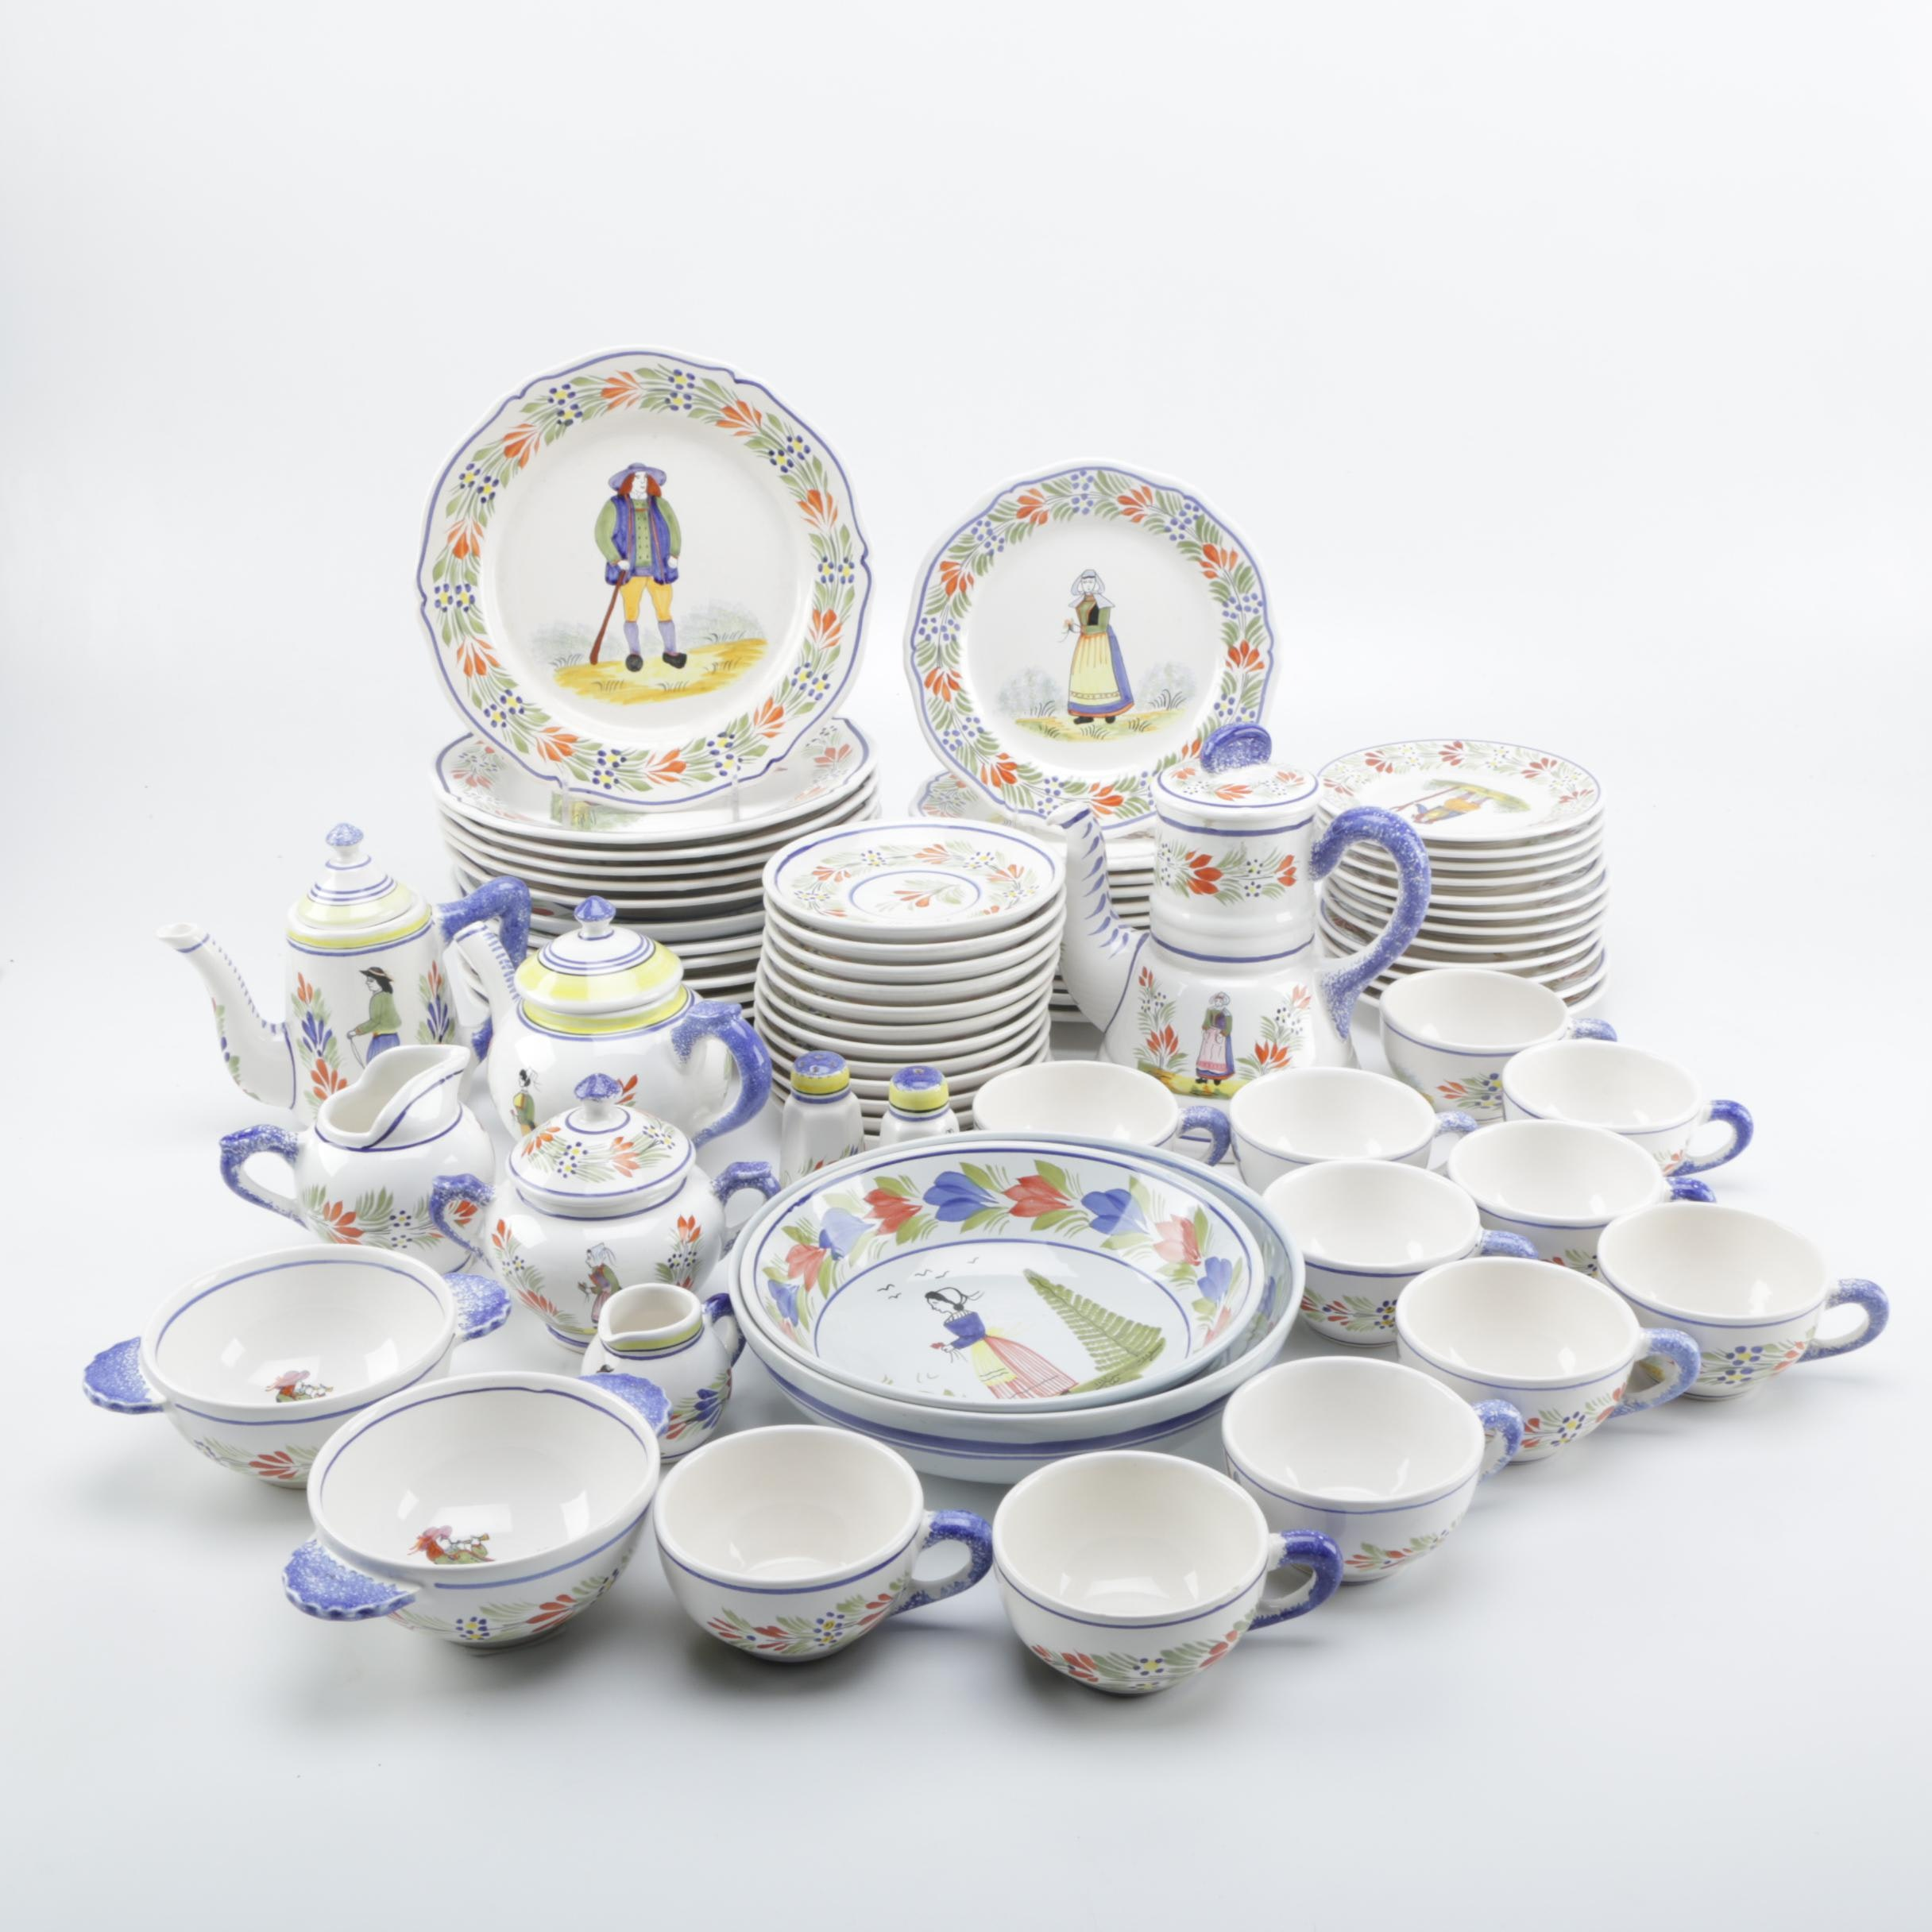 Henriot Quimper Ceramic Hand-Painted Dinnerware Set